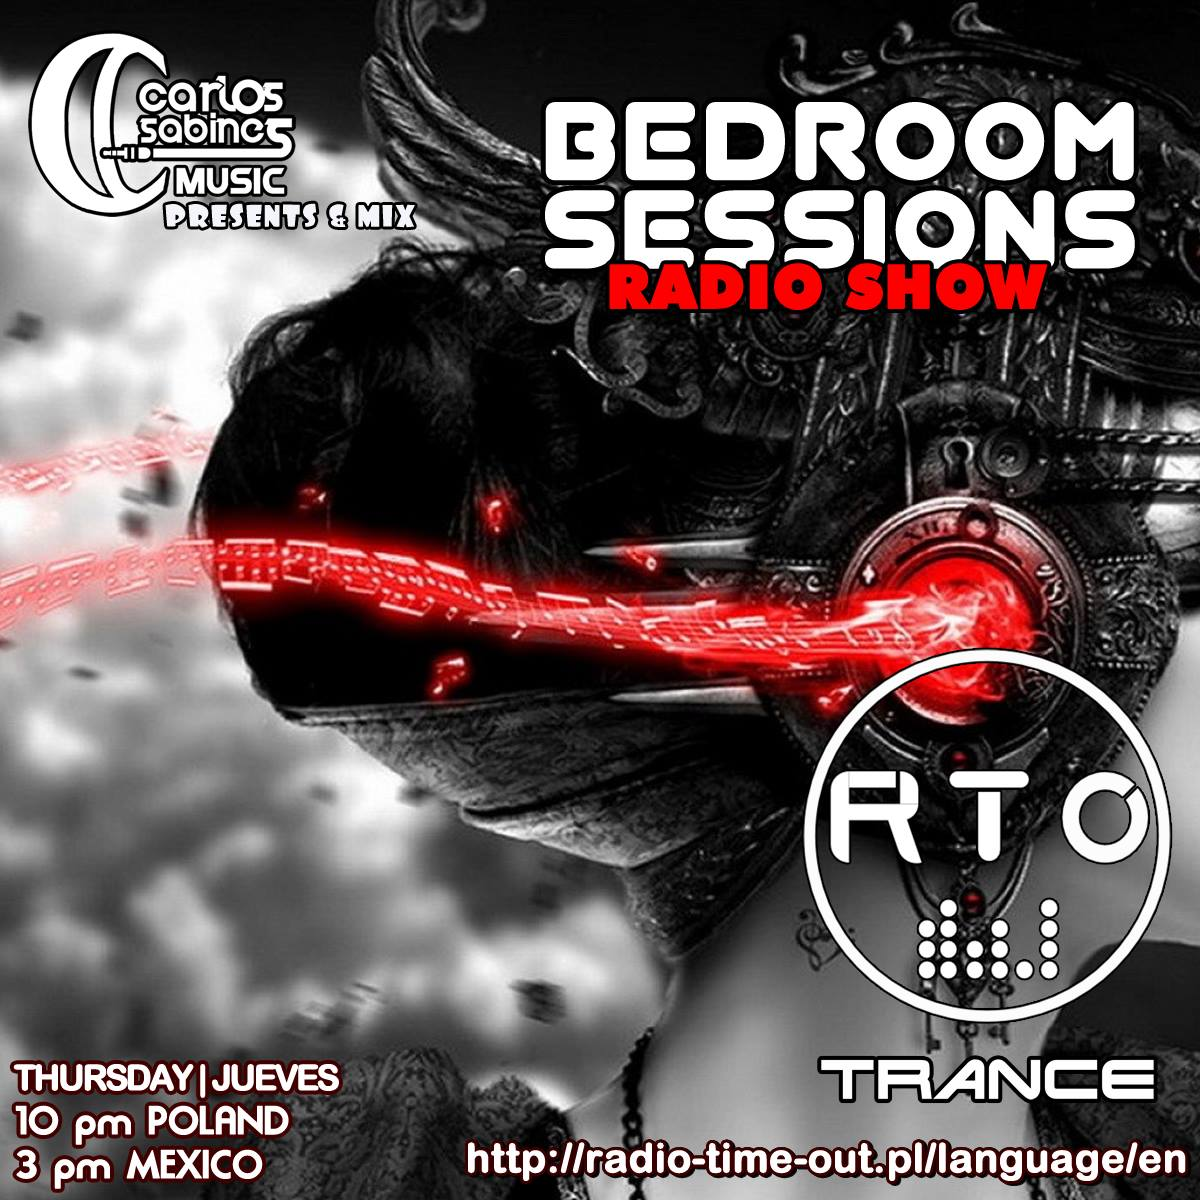 Coming up my #BedroomSessionsRadioShow Broadcast from #Poland  Transmisión desde #Polonia  ▶️ http://radio-time-out.pl/language/en ➡️ 10 pm Poland ➡️ 3 pm #México  #RadioShow #Trance #TranceFamily #RT #DJLife #CarlosSabines